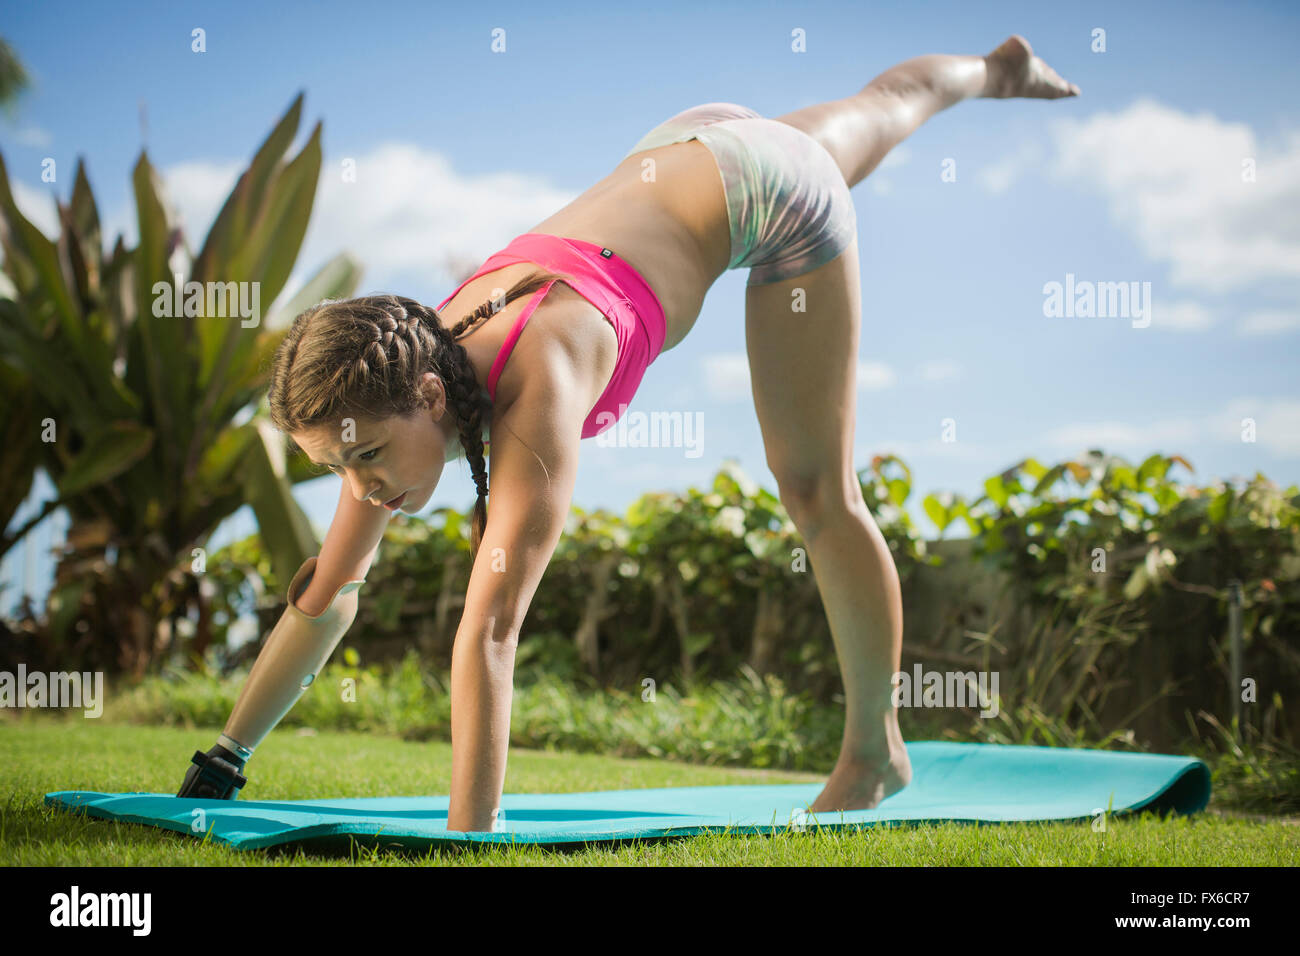 Mixed race amputee practicing yoga in grass Stock Photo